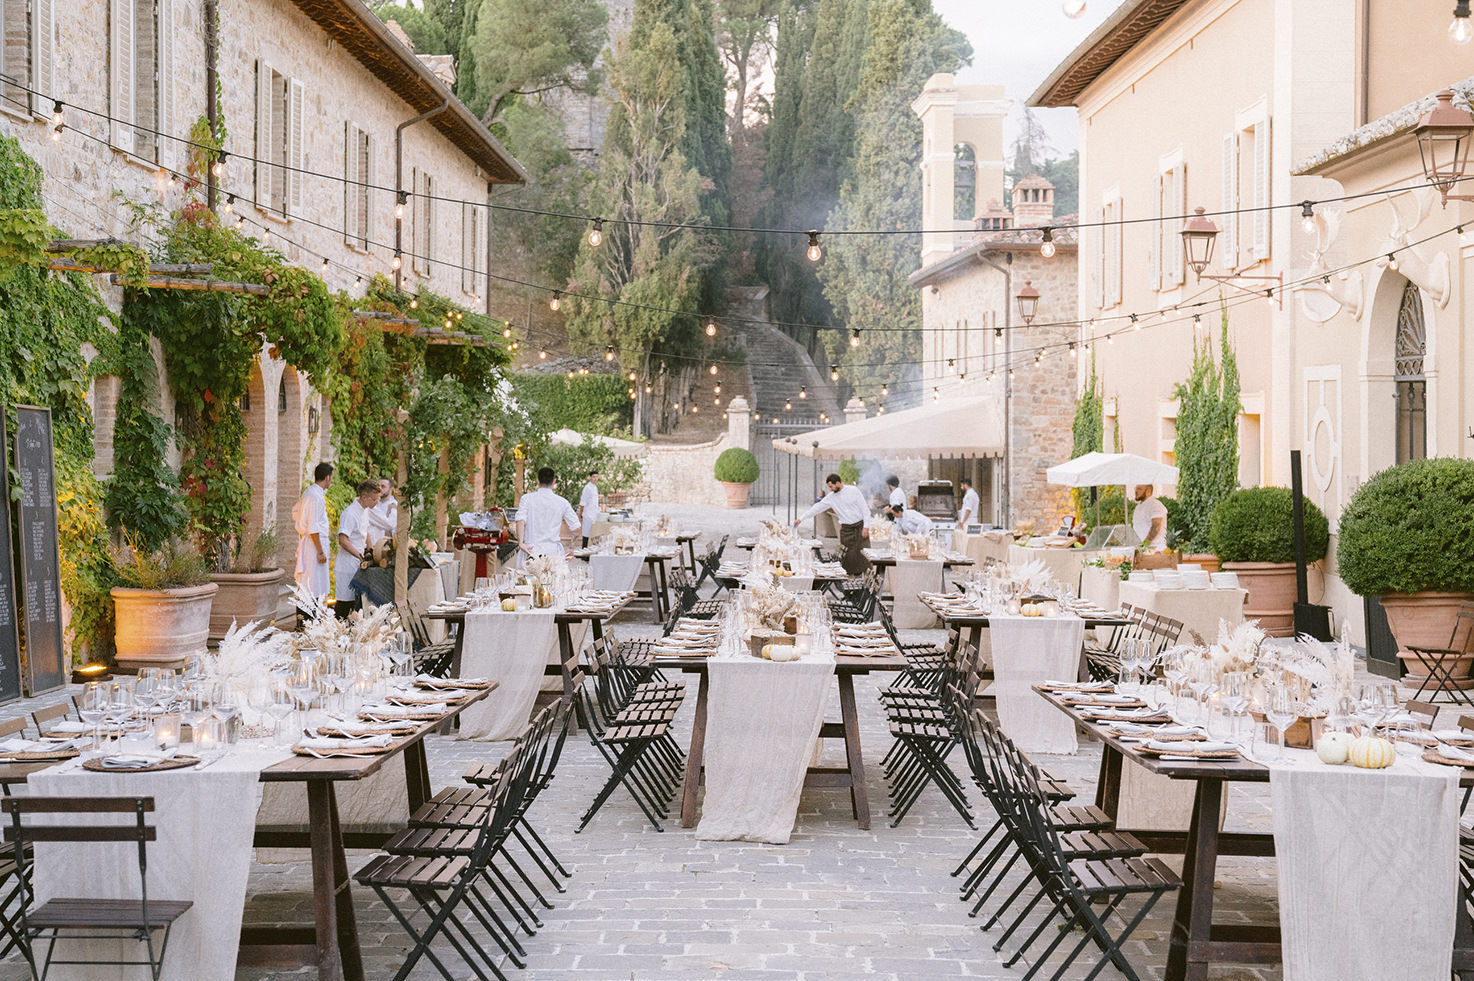 Outdoor rehearsal dinner in a Tuscan village